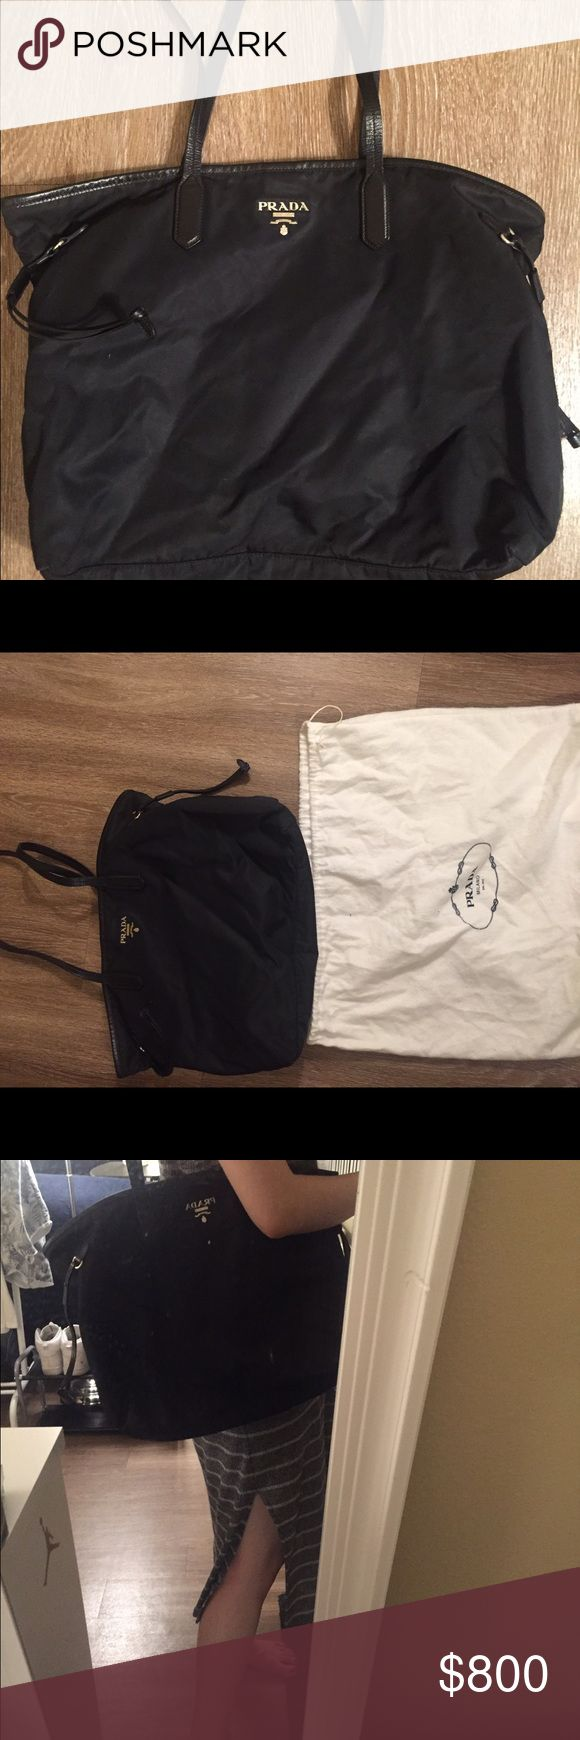 Prada Nylon tote bag rarely used, very great condition, scratch less, nylon leather tote ! Prada Bags Totes